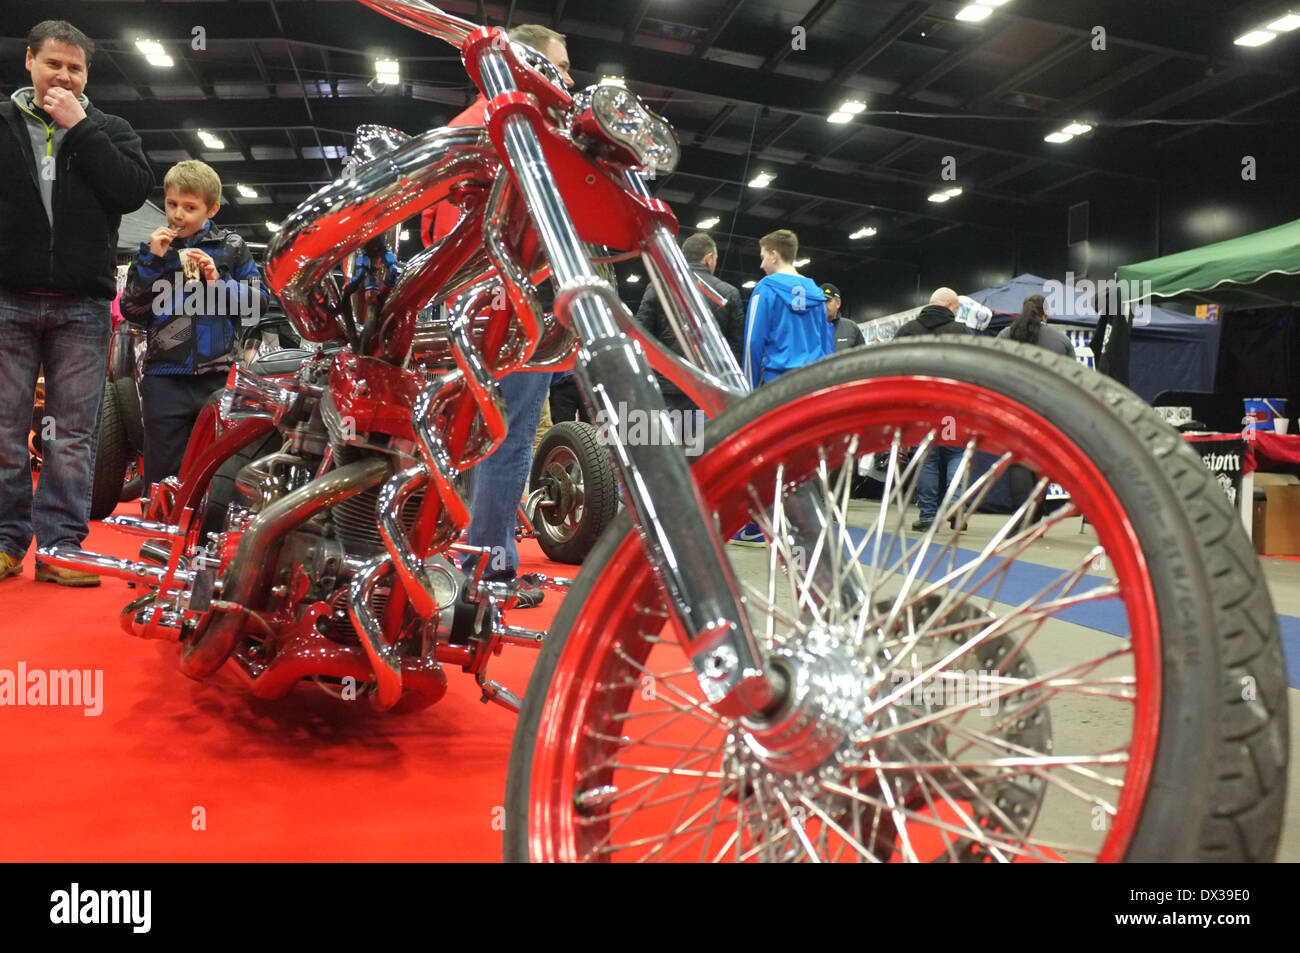 Custom motor bike on display at the MCN Scottish Motorcycle Show. An impressive display of bikes can be seen. - Stock Image